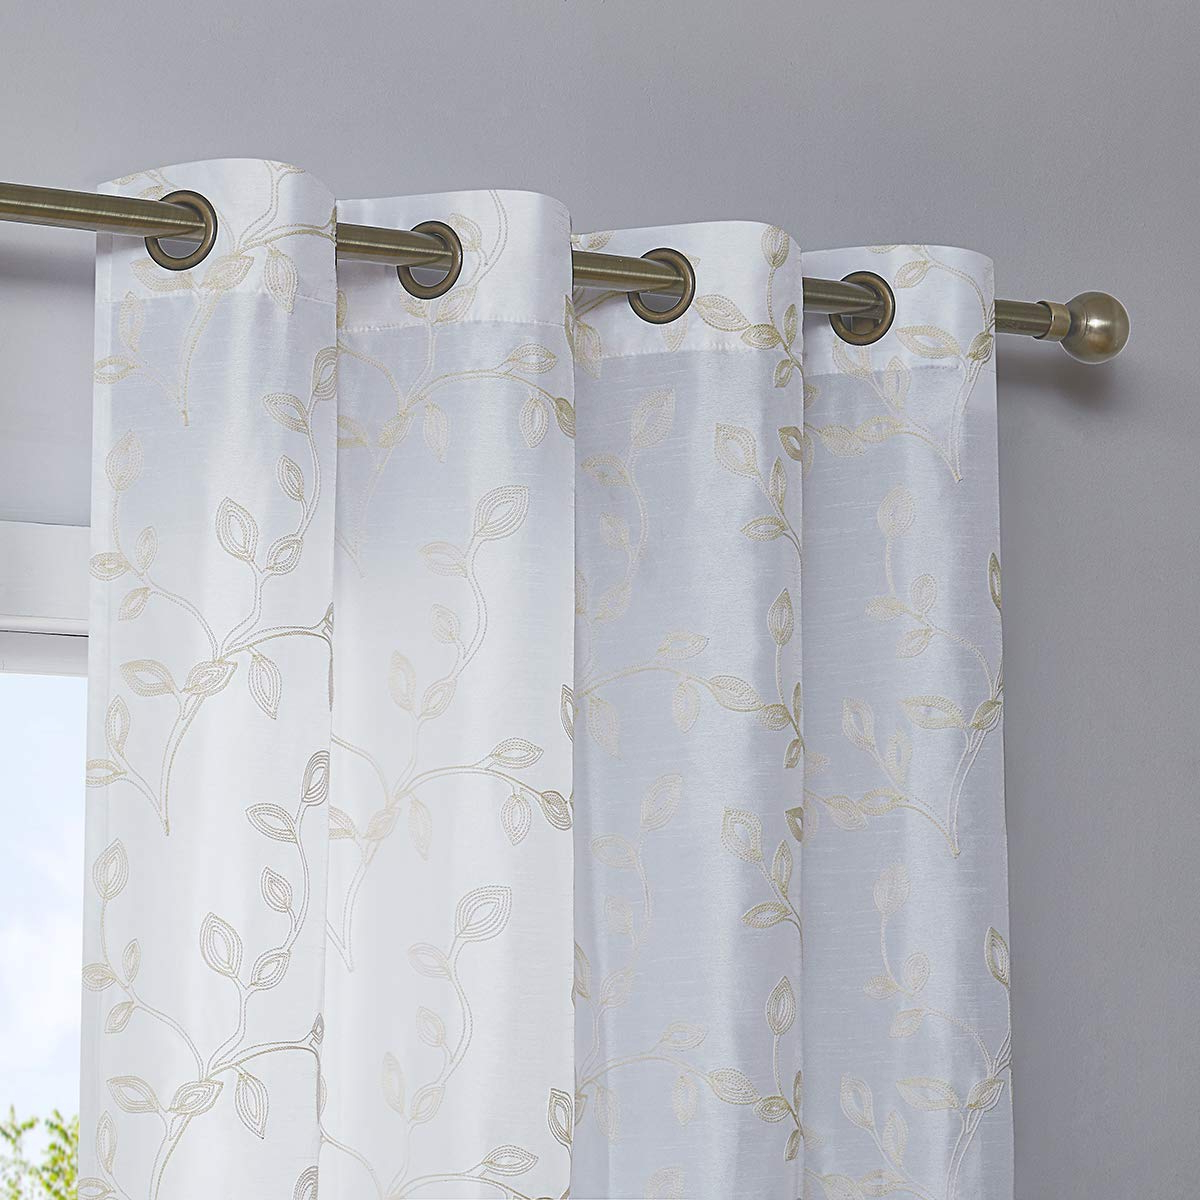 Widely Used Ofloral Embroidered Faux Silk Window Curtain Panels For Faux Silk Embroidered Semi Sheer Curtains For Bedroom, Grommet Floral Embroidered Sheer Window Curtains For Living Room, 52 X 84 Inch Long, White, (View 18 of 20)